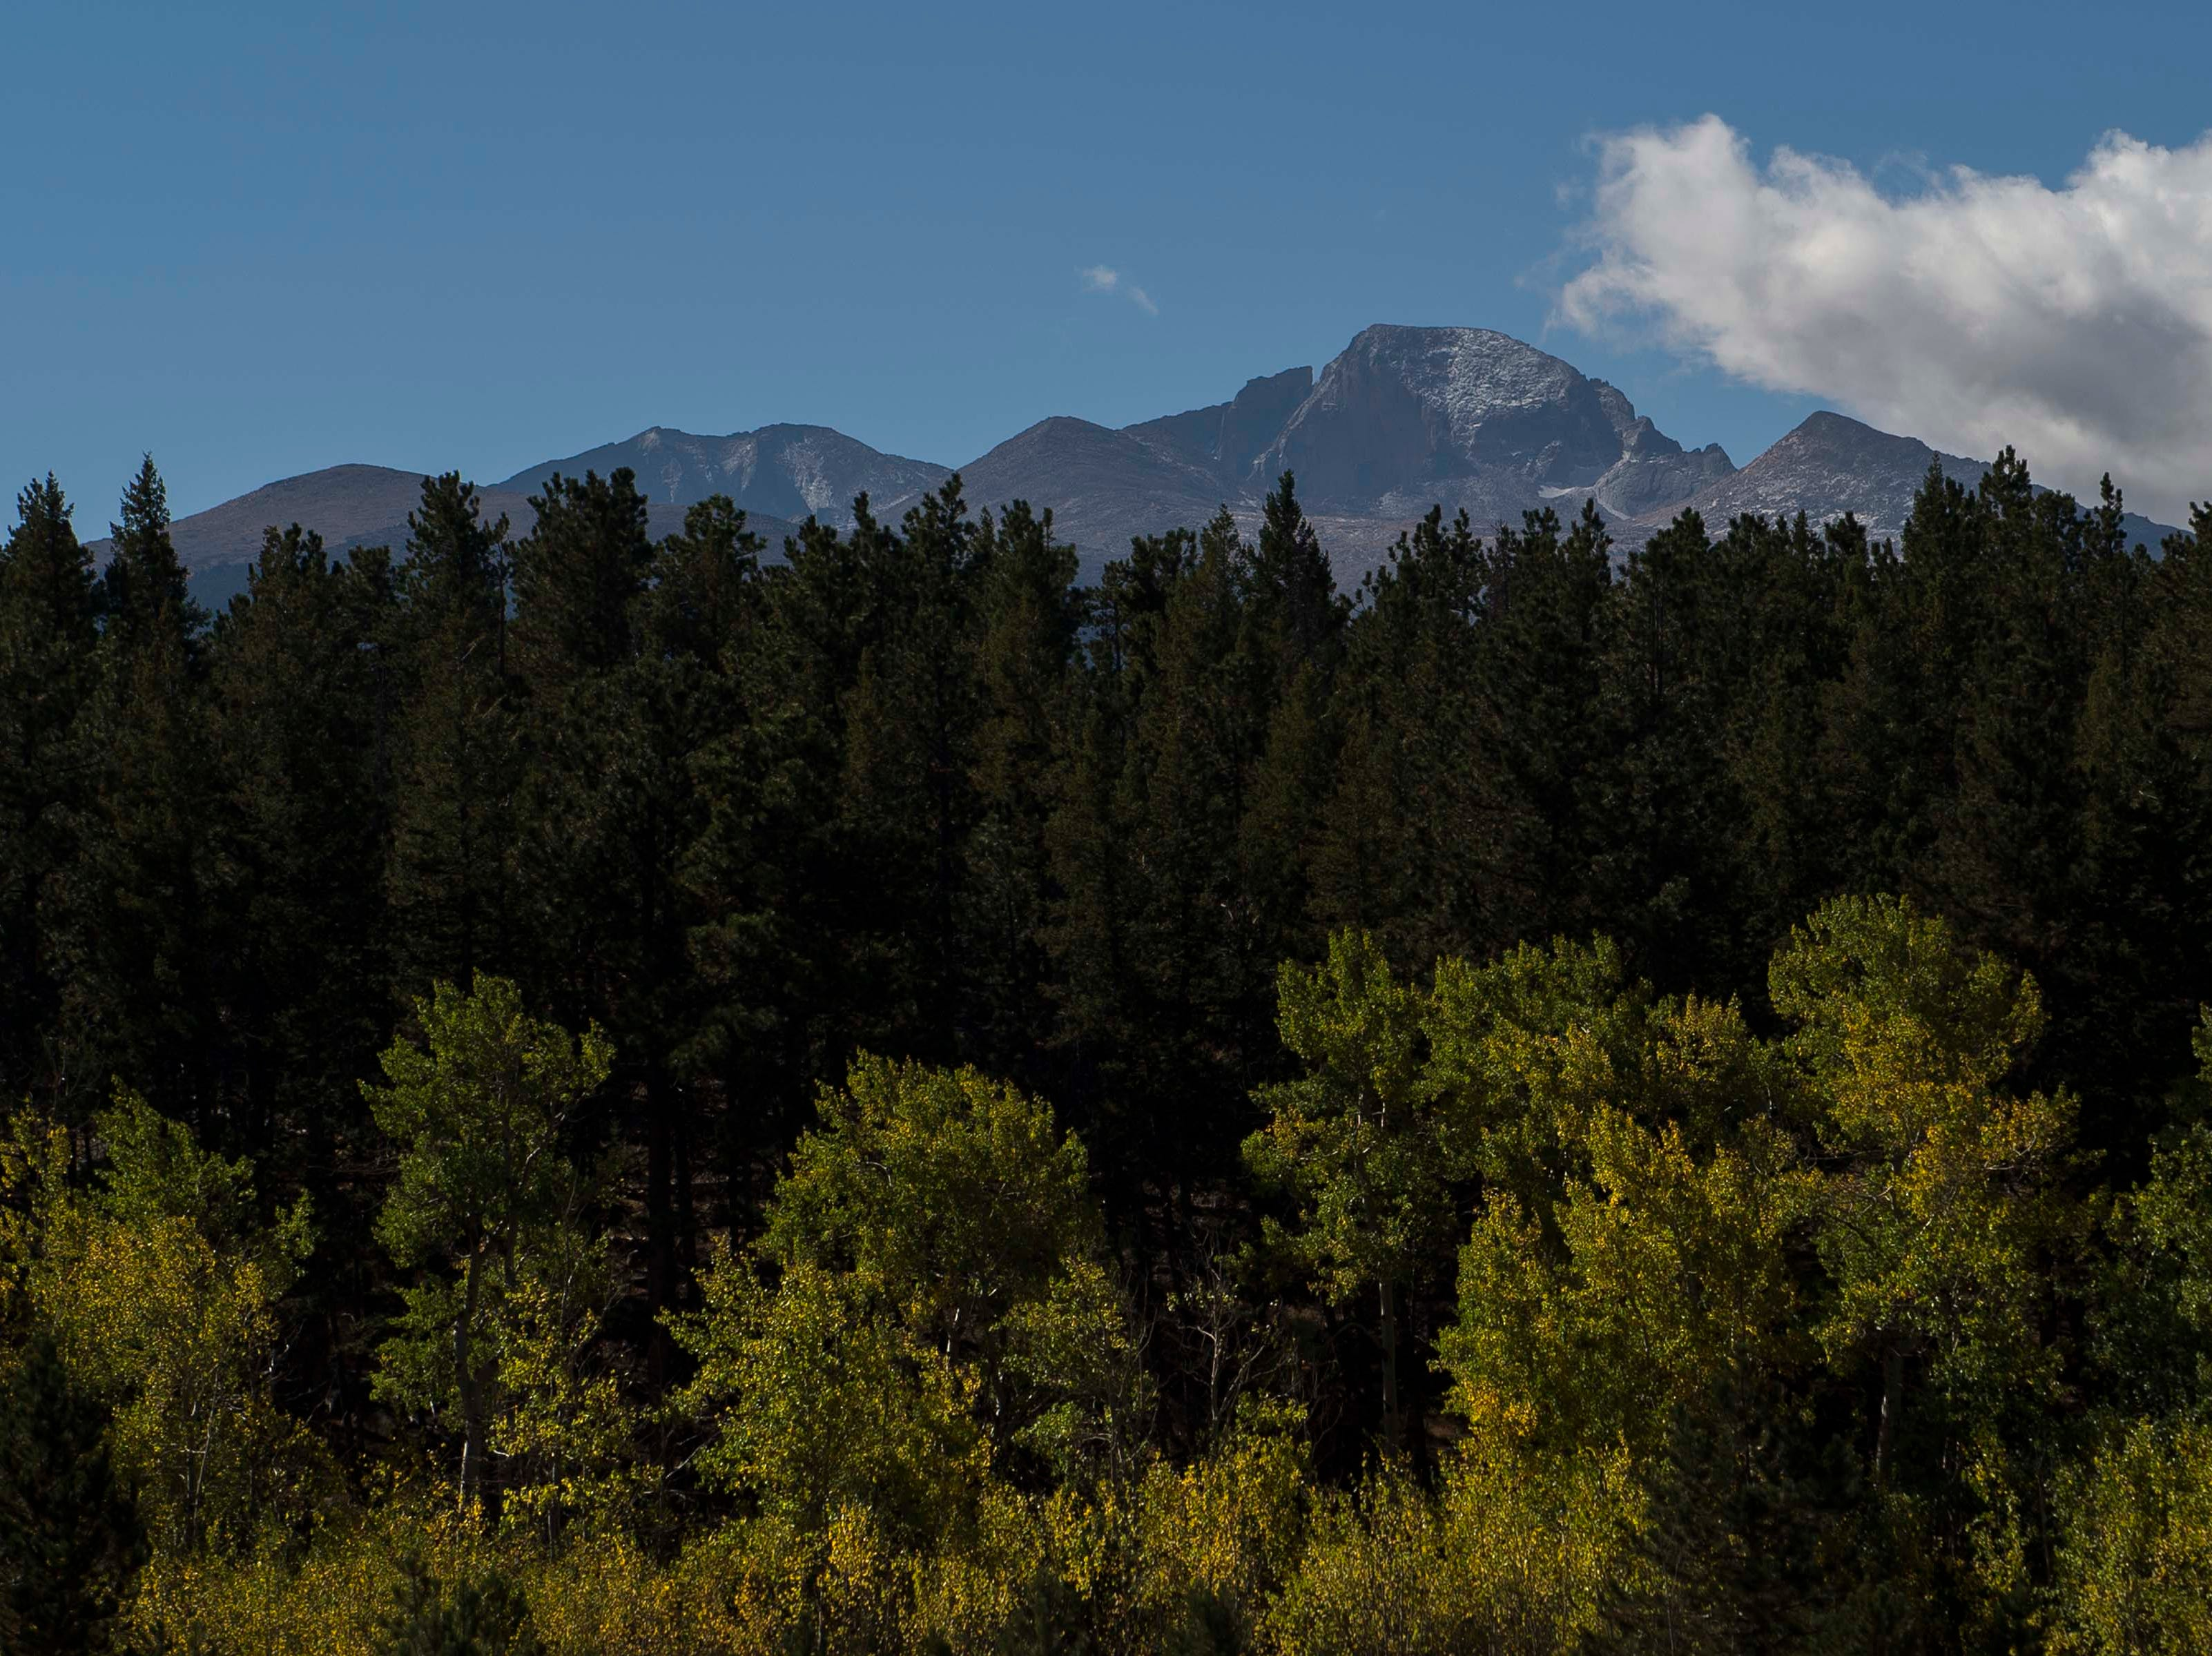 Clouds roll over Longs Peak on Monday, Sept. 24, 2018, at Rocky Mountain National Park in Colo.